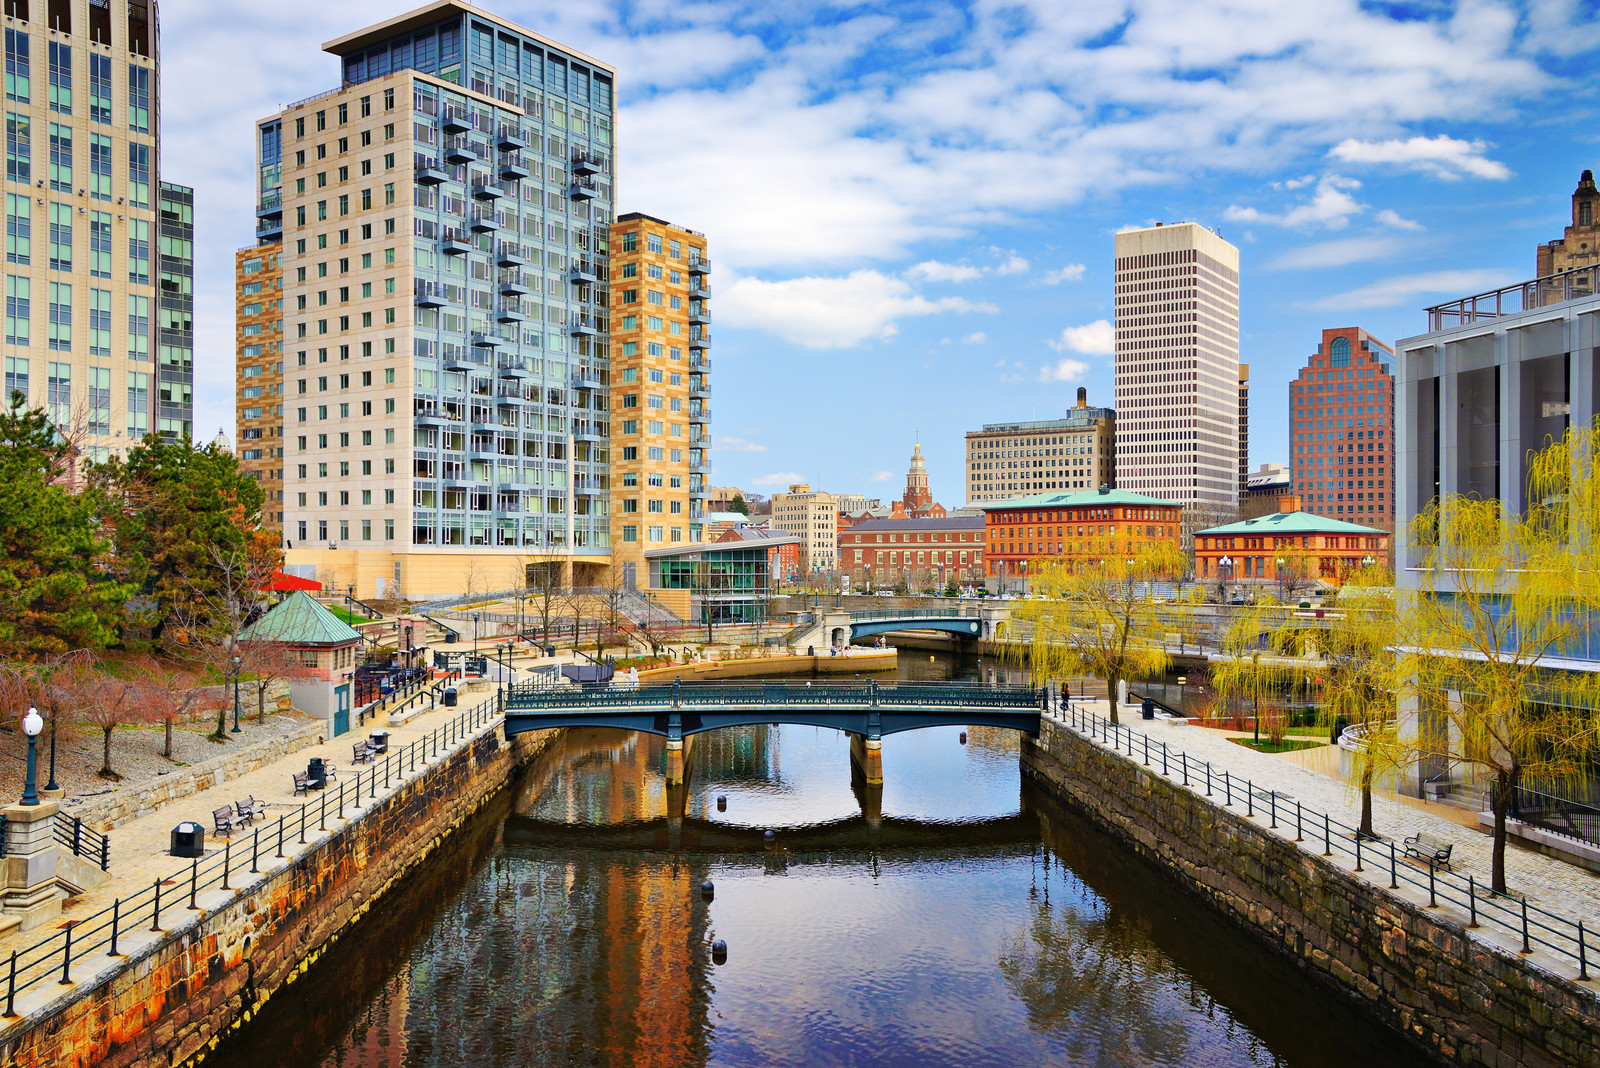 View of waterplace park in downtown Providence, featuring the waterway, footbridges, and walkways